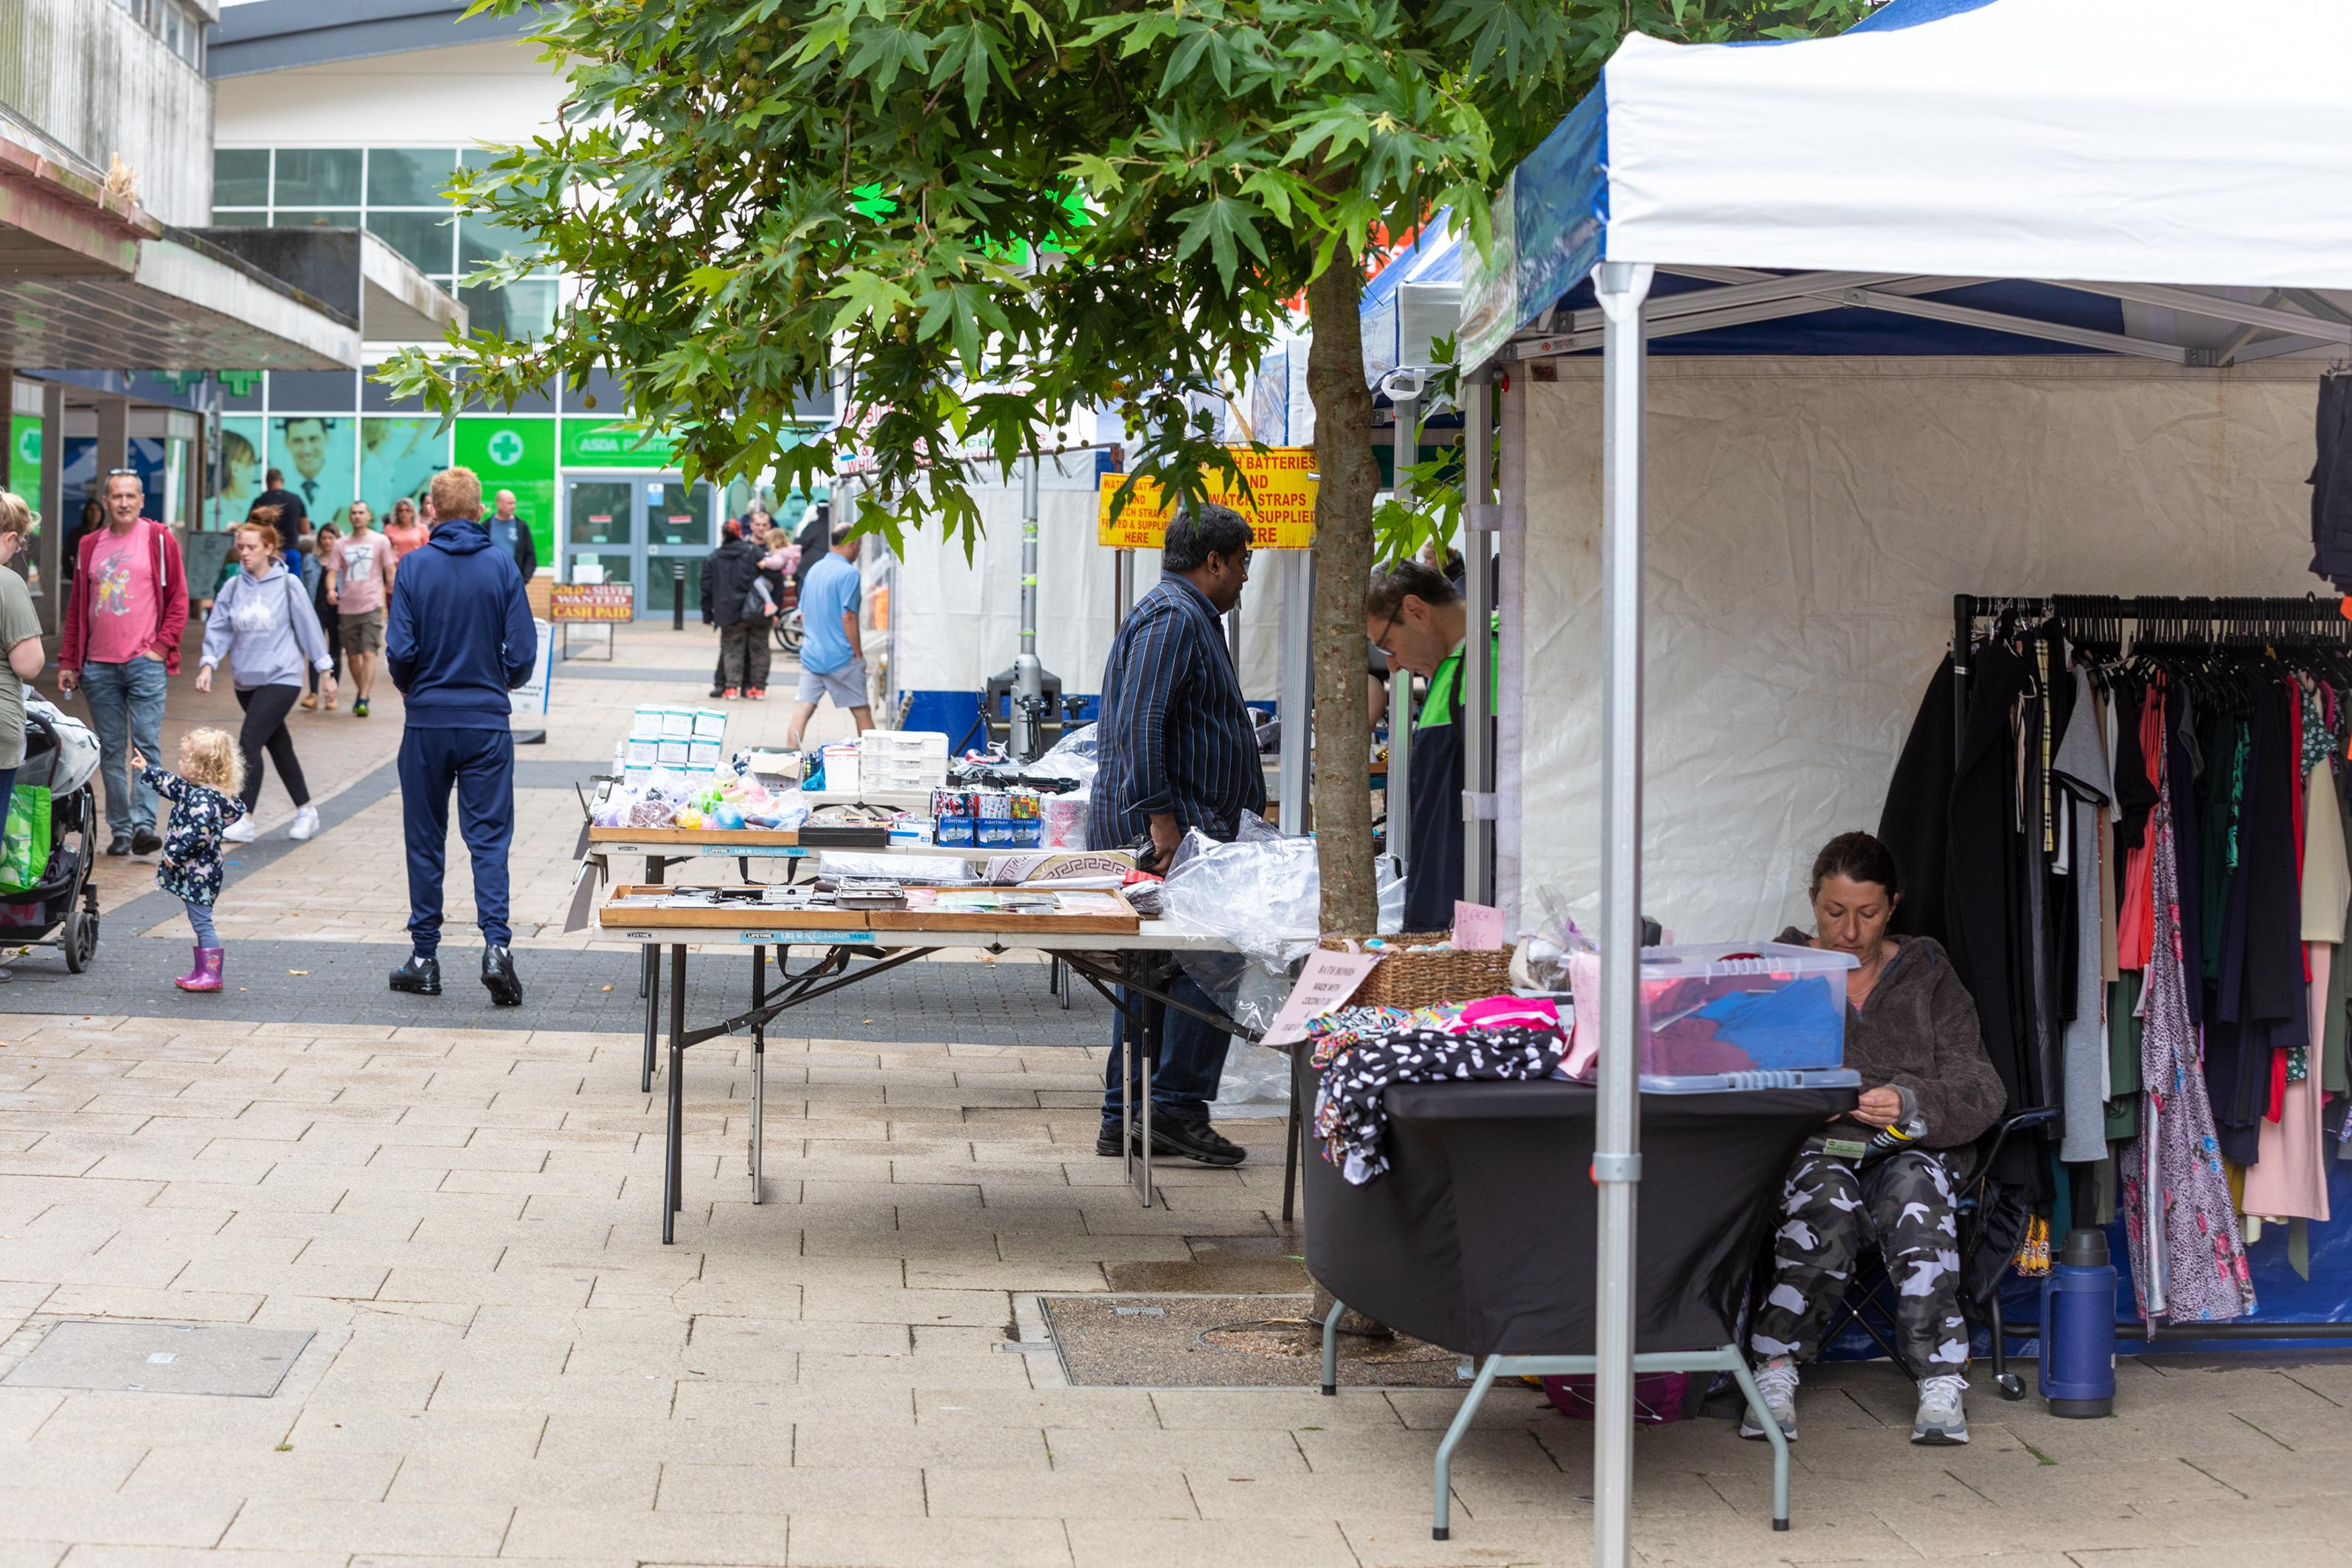 Public Spaces Protection Order in Hatfield set to be extended